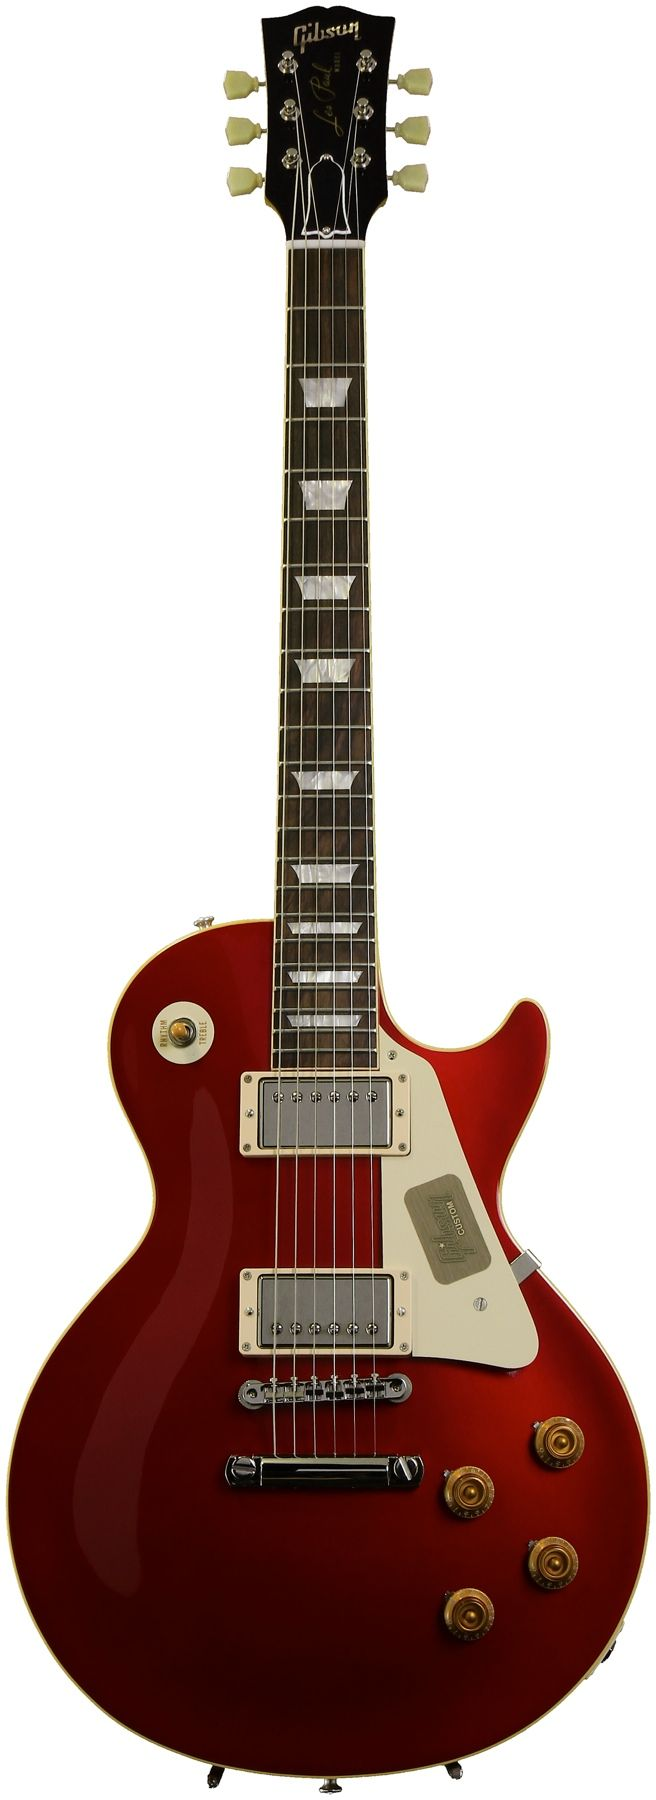 Gibson Custom 1957 Les Paul Reissue (Candy Apple Red) | Sweetwater.com